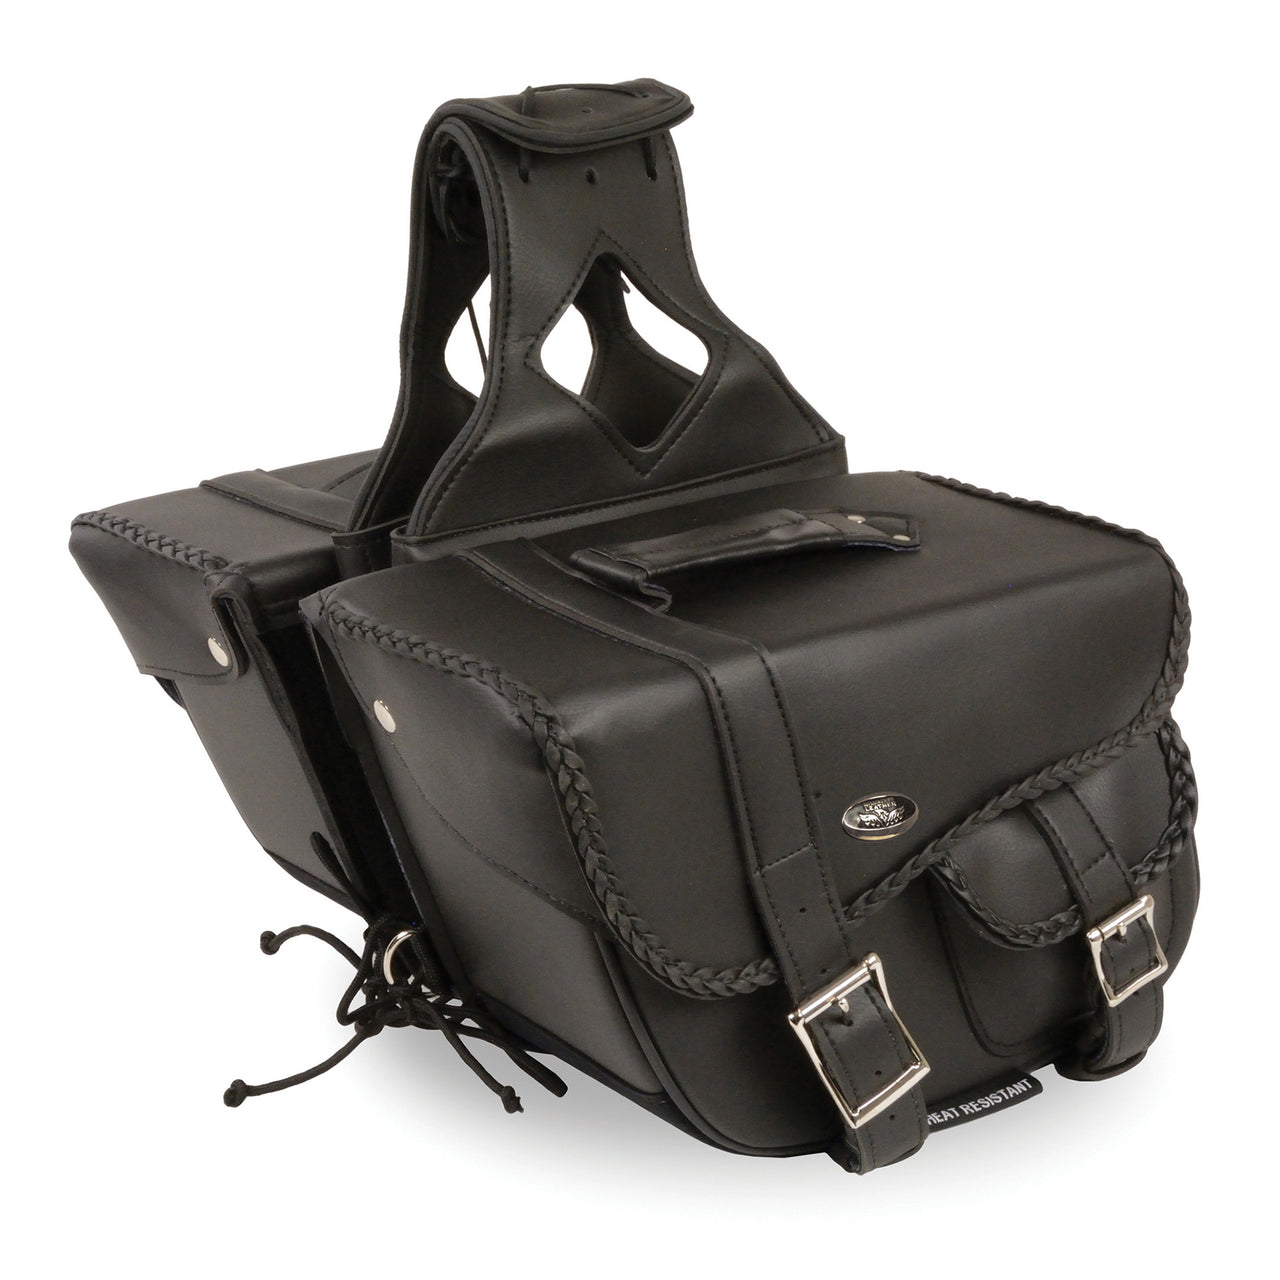 Medium Braided Zip-Off PVC Throw Over Saddle Bag w/ Bonus Pocket (12X9X6X17.5) - HighwayLeather